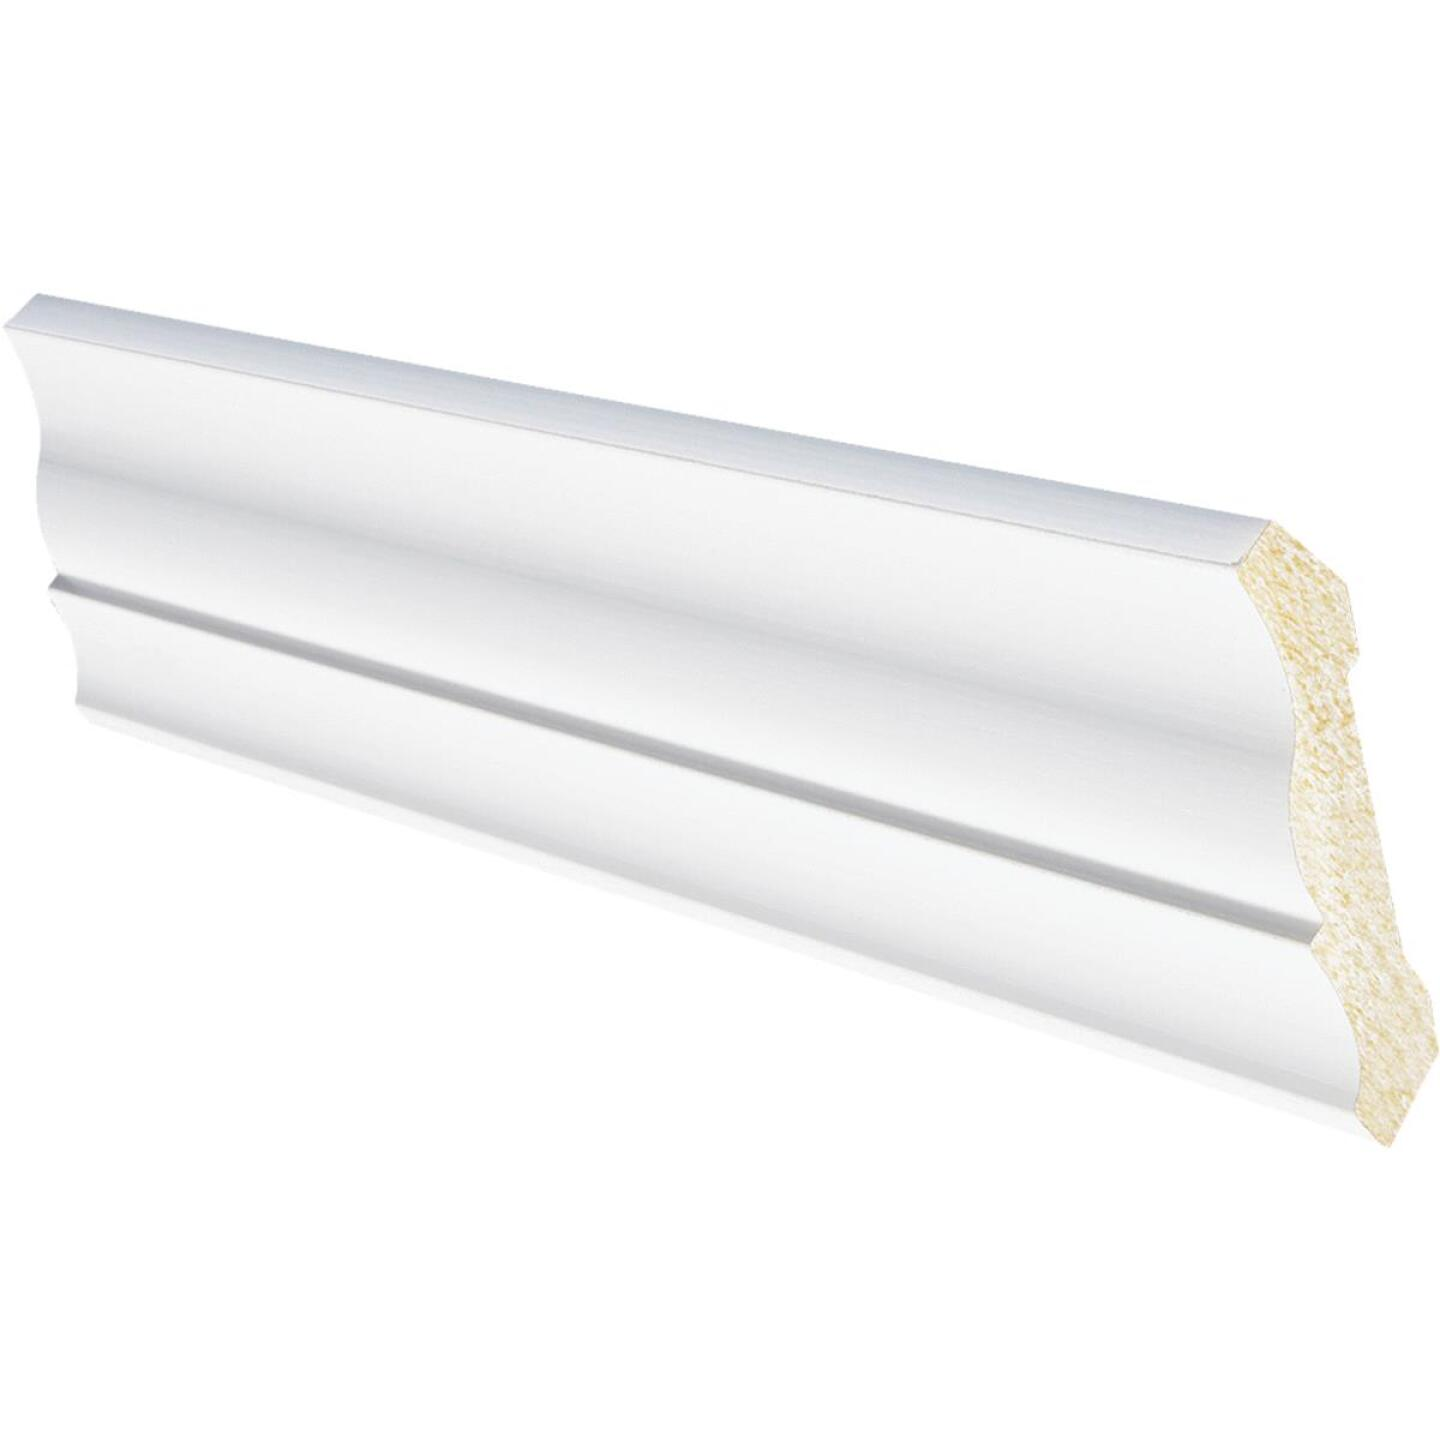 Inteplast Building Products 1/2 In. W. x 3-3/16 In. H. x 8 Ft. L. Crystal White Polystyrene Crown Molding Image 1